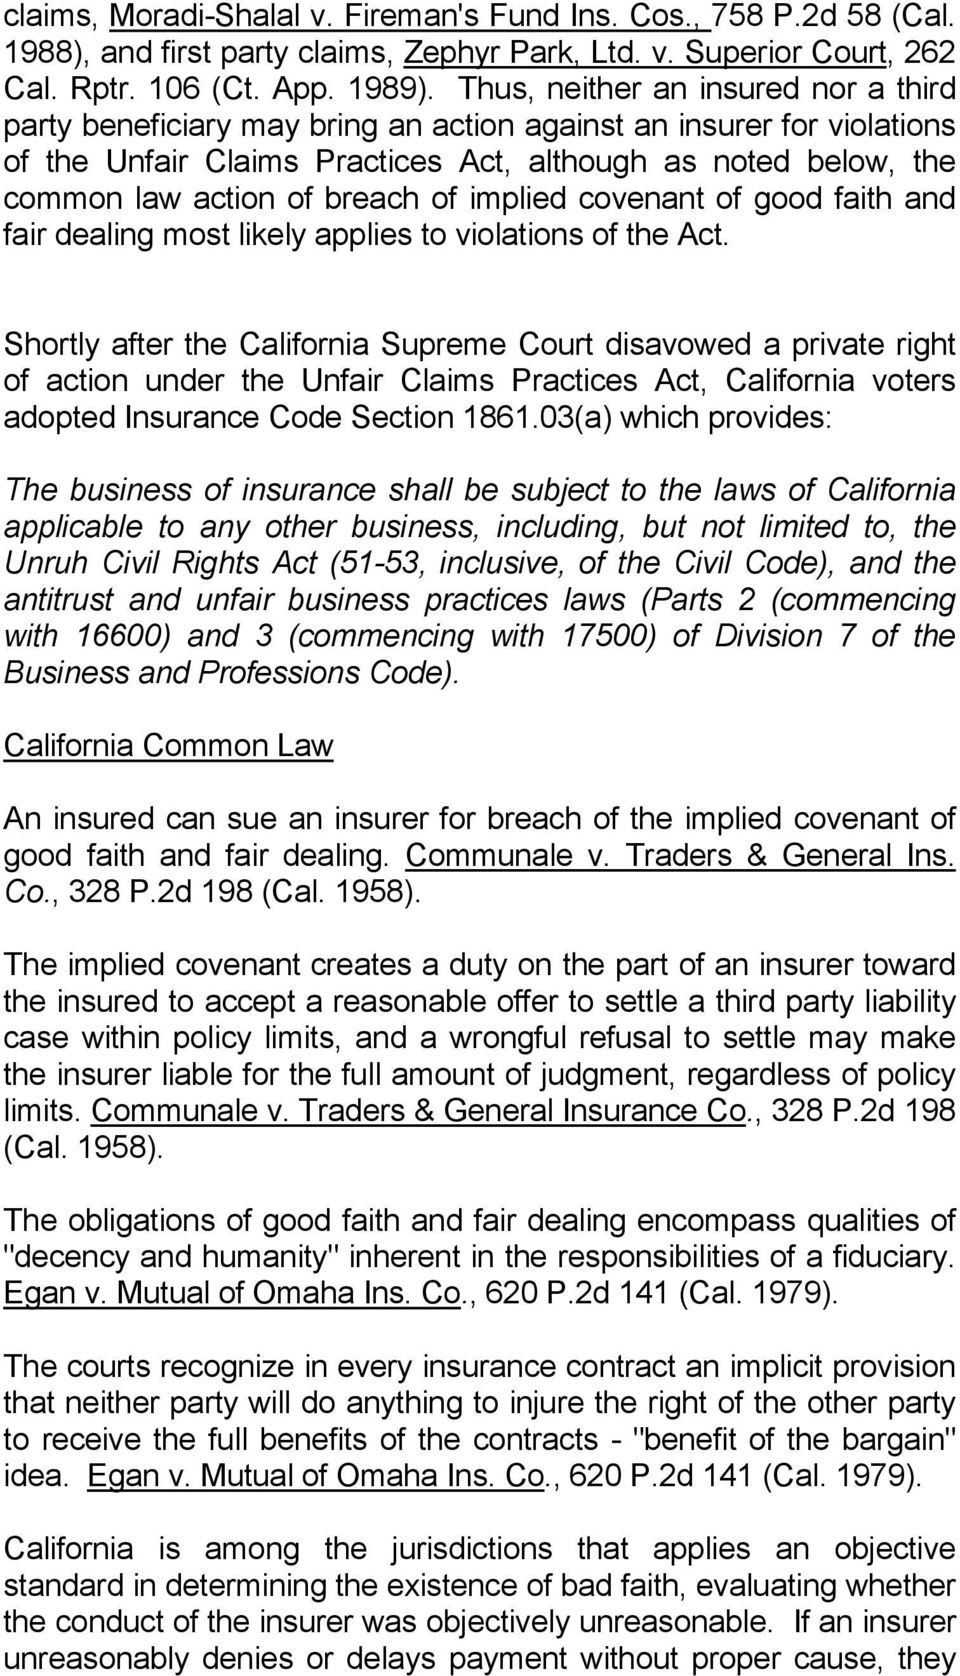 breach of implied covenant of good faith and fair dealing most likely applies to violations of the Act.